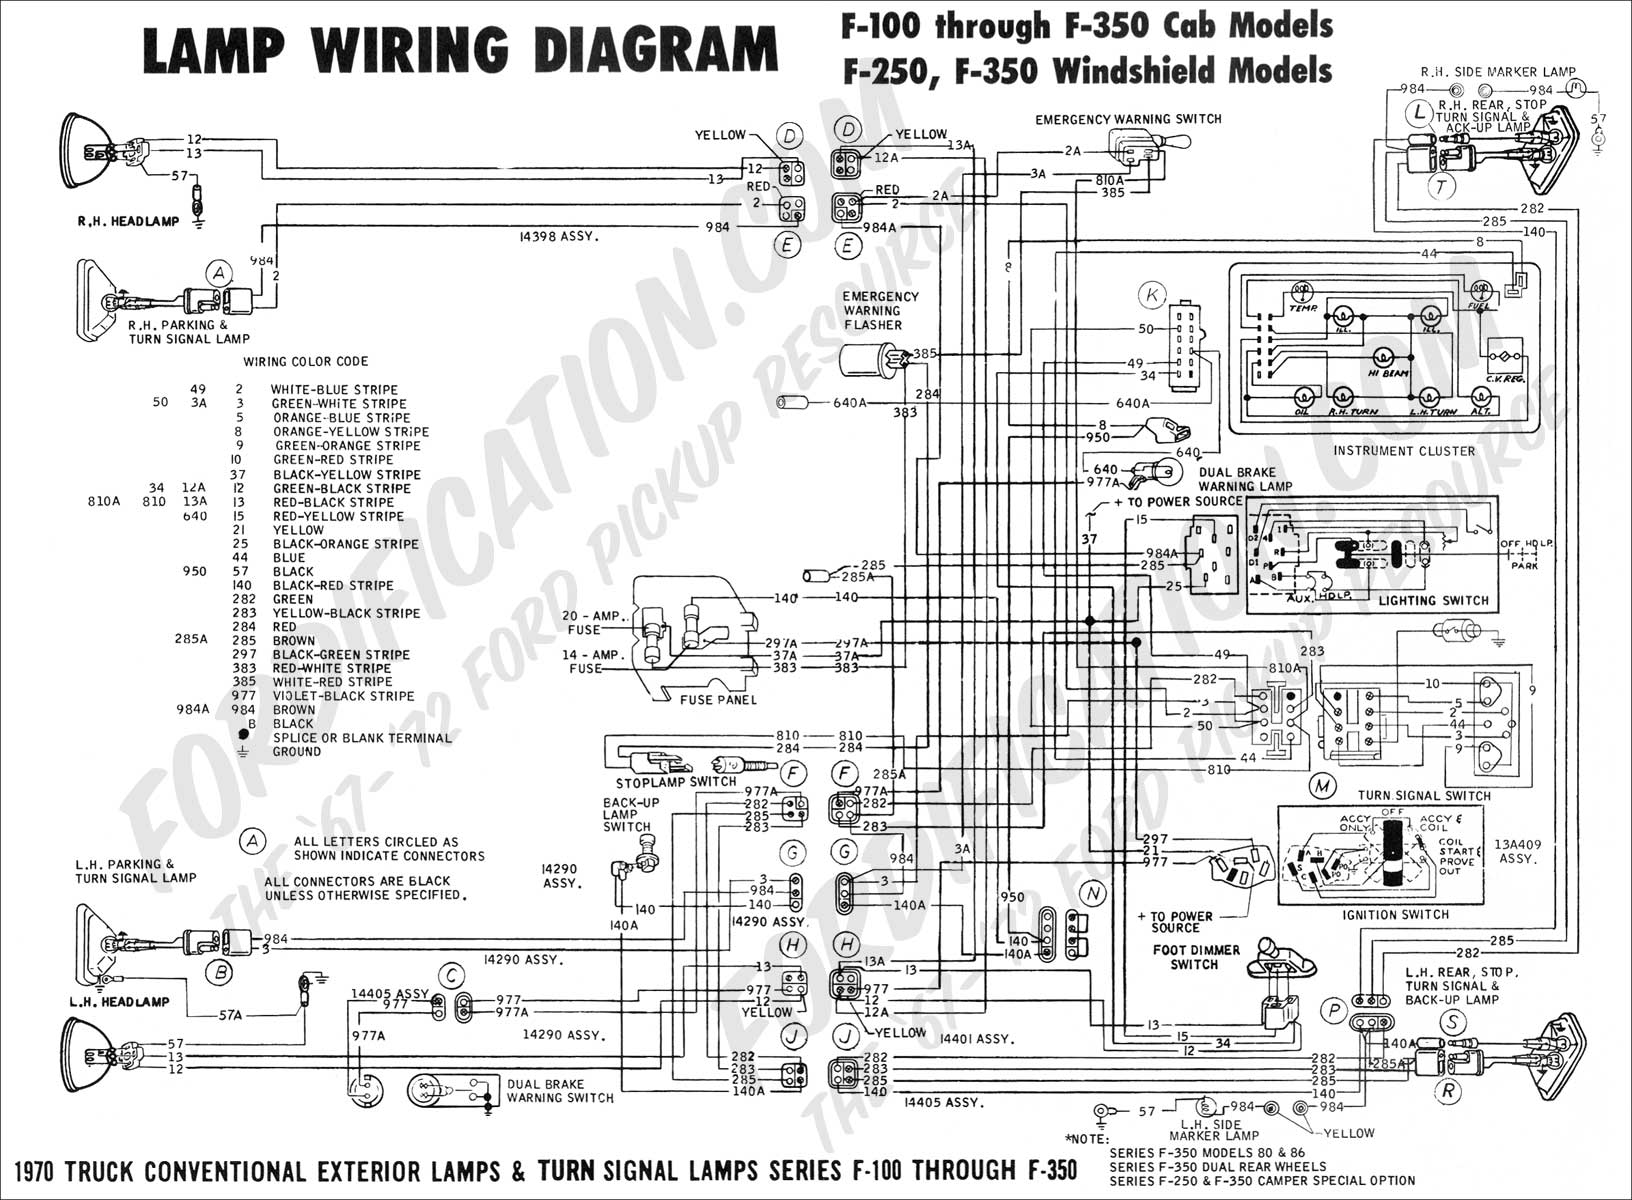 wiring diagram_70ext lights01?resize=665%2C489 ford f150 right rear taillight is out where is fuse and how 1999 ford f150 turn signal wiring diagram at eliteediting.co